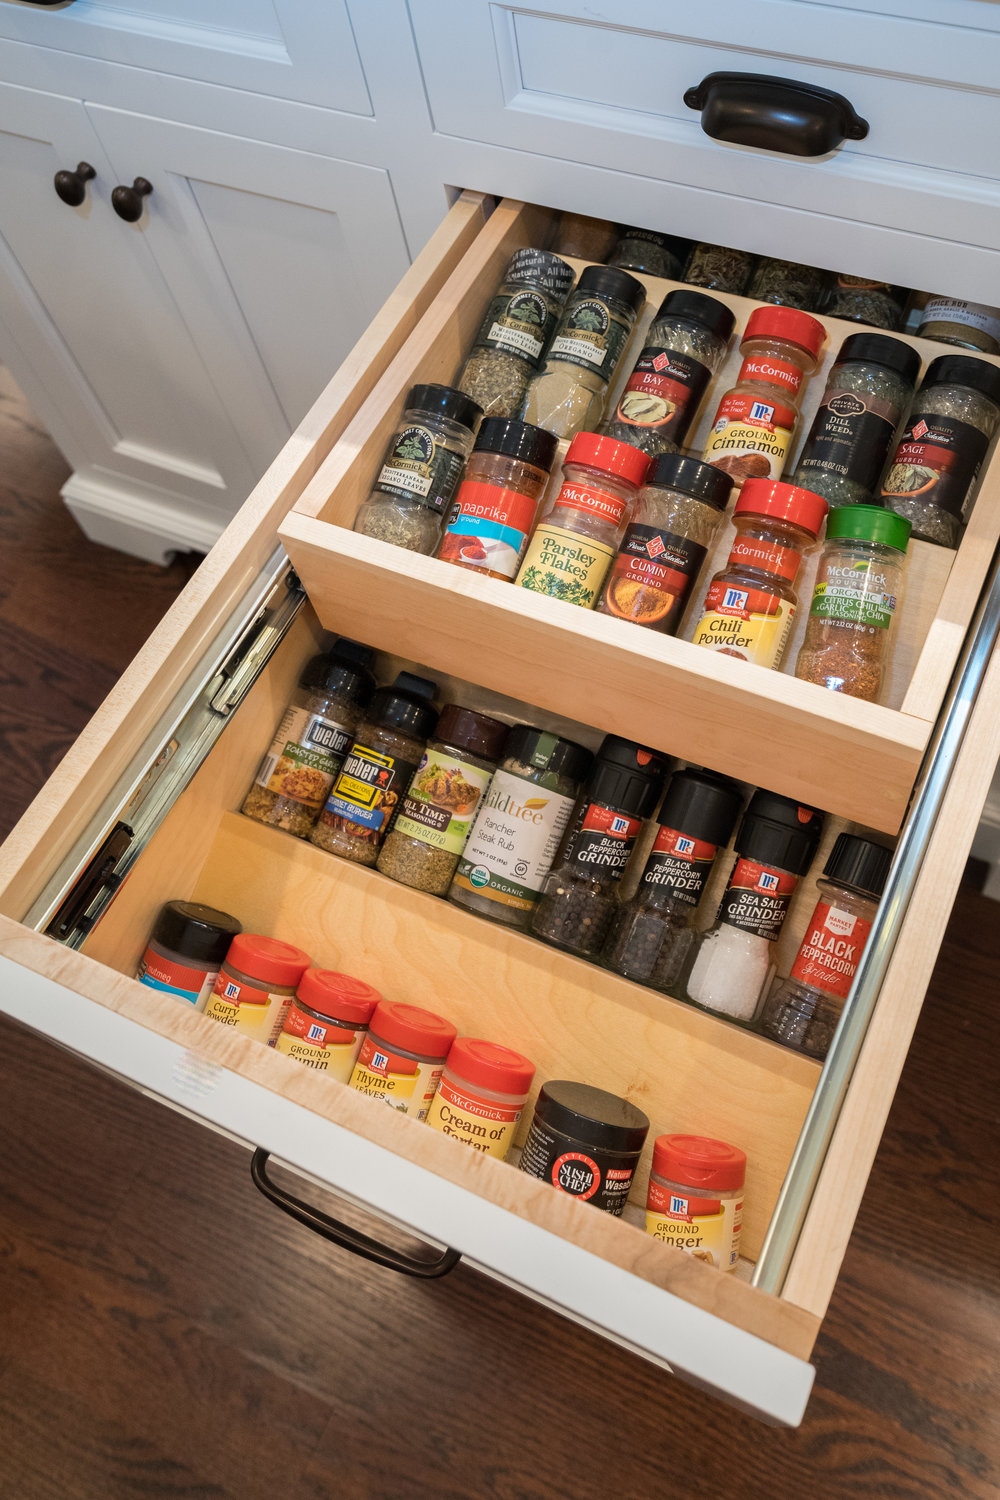 Double spice drawer so that you can see all of your spices!